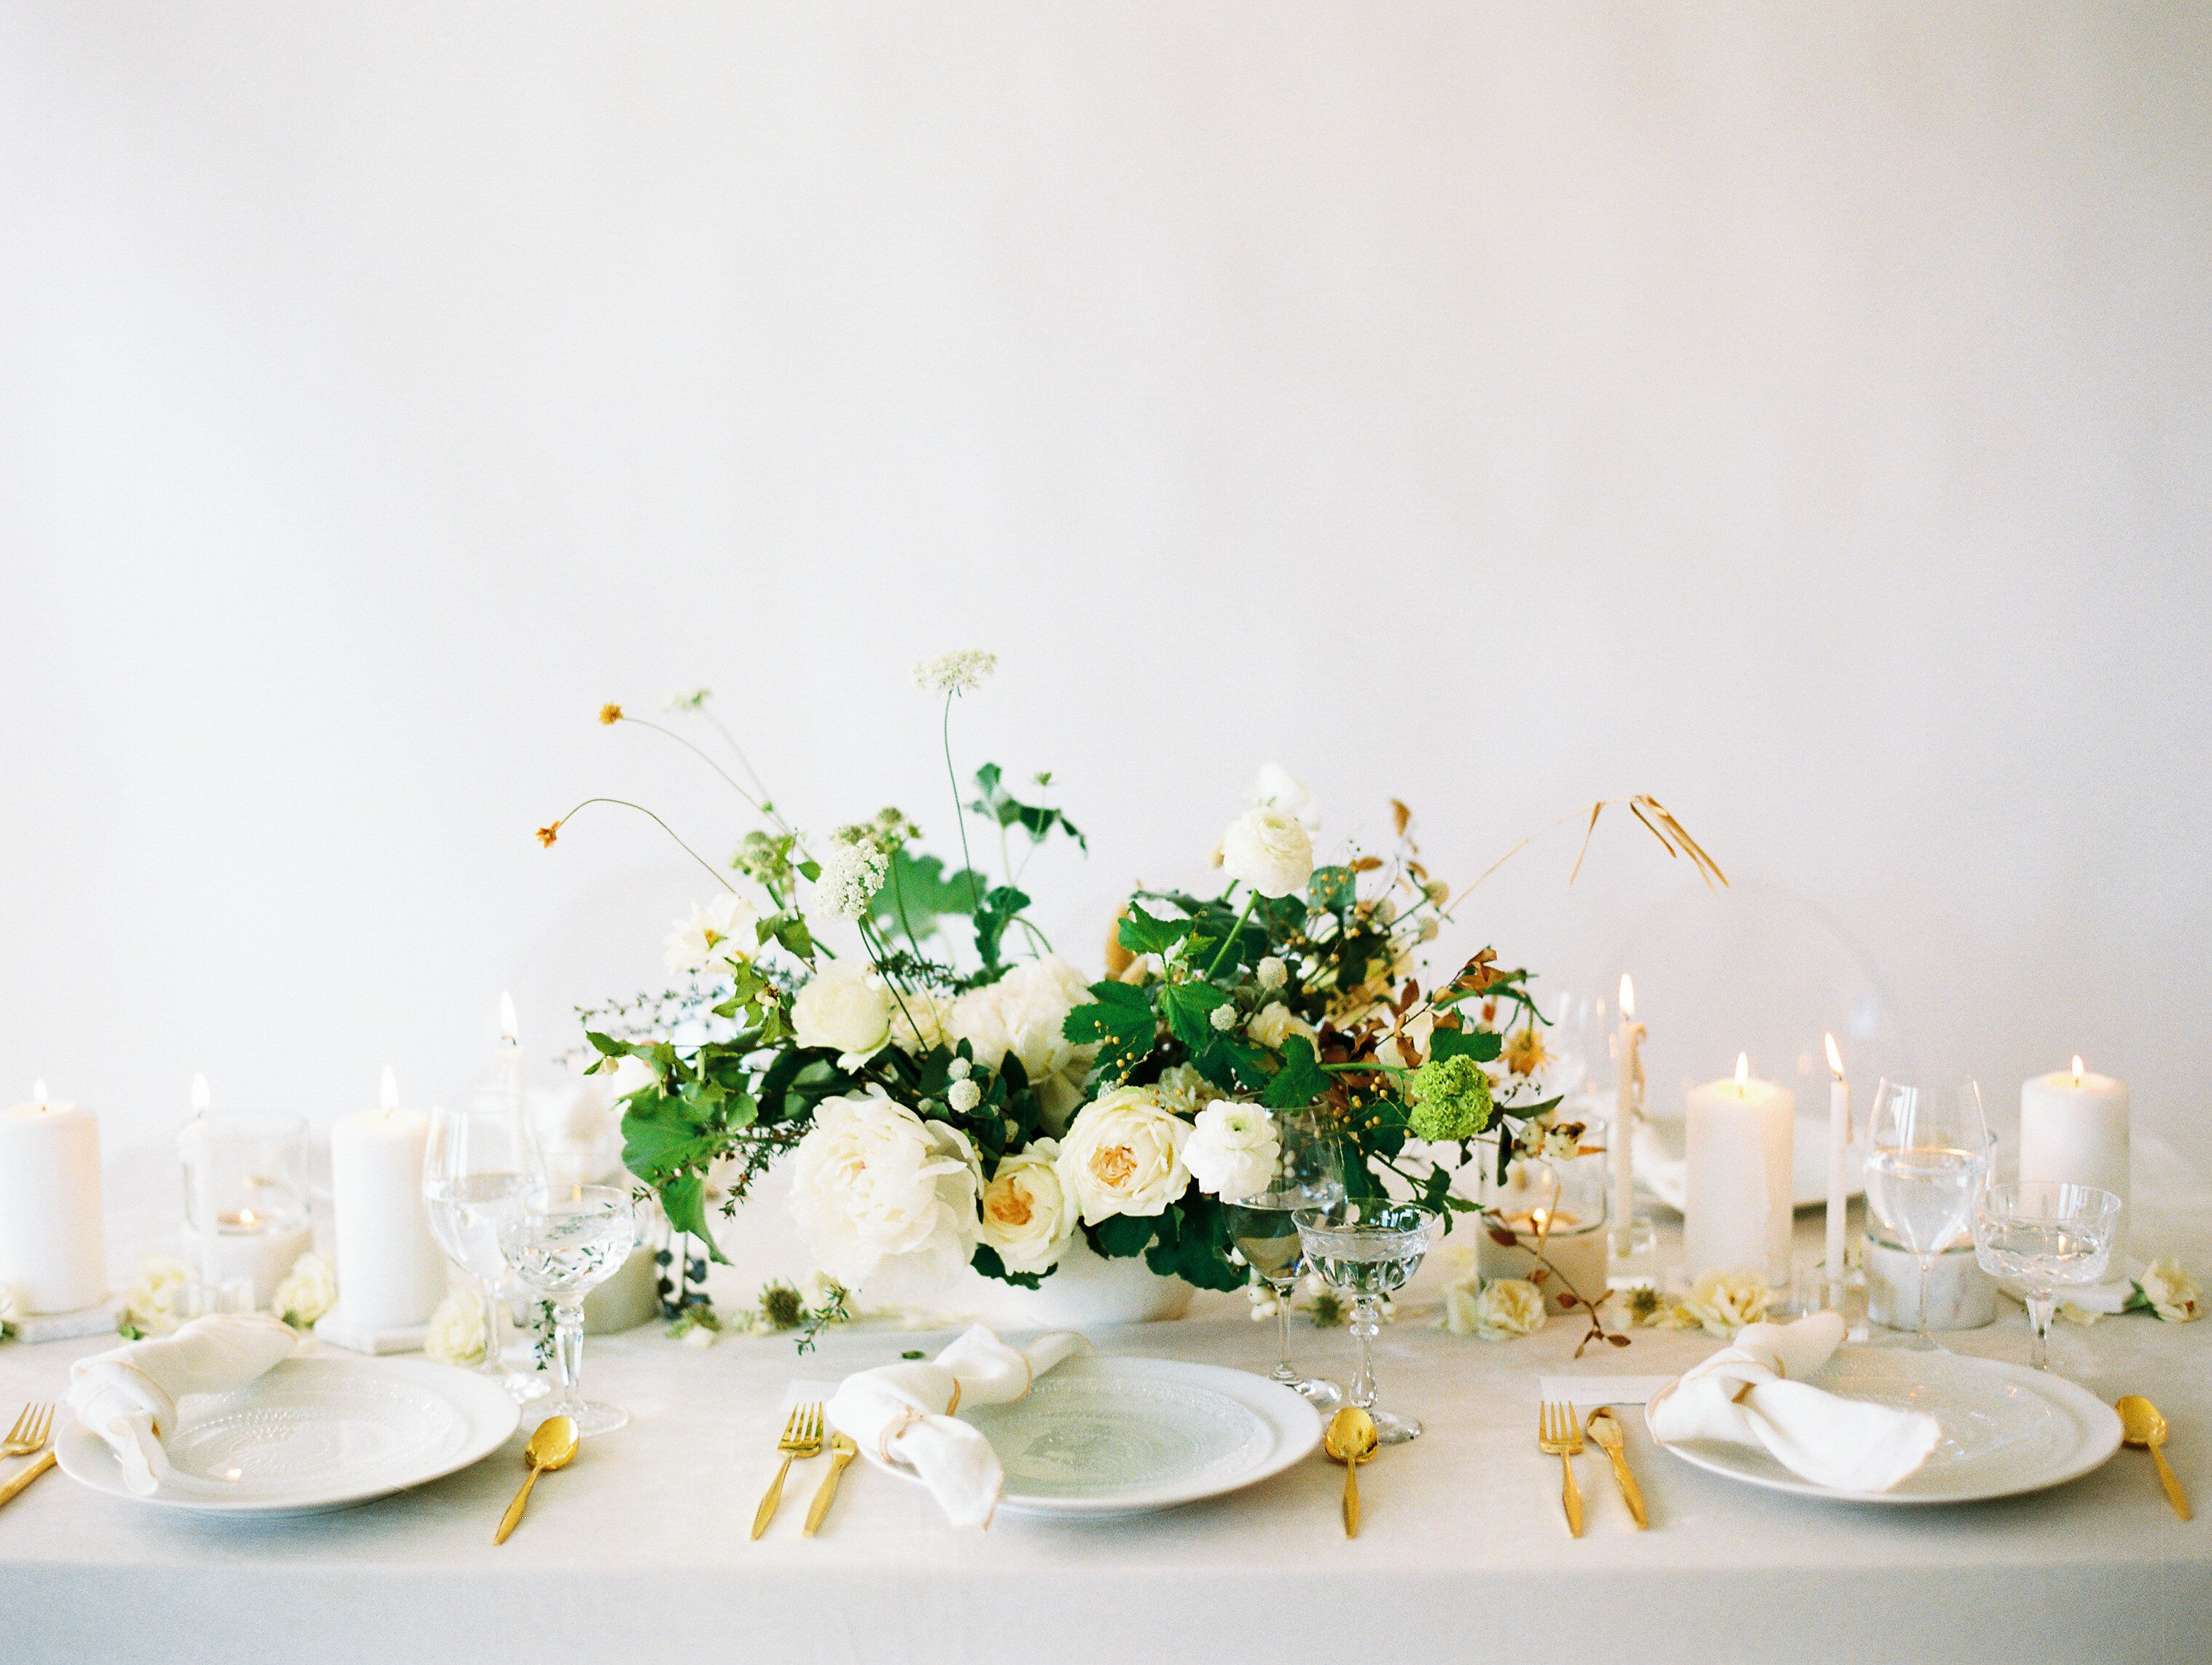 La Tavola Fine Linen Rental: Velvet Oatmeal | Photography: Natalie Bray Studios, Floral Design: Native Poppy, Tabletop: Hostess Haven, Paper Goods: Shasta Bell Calligraphy